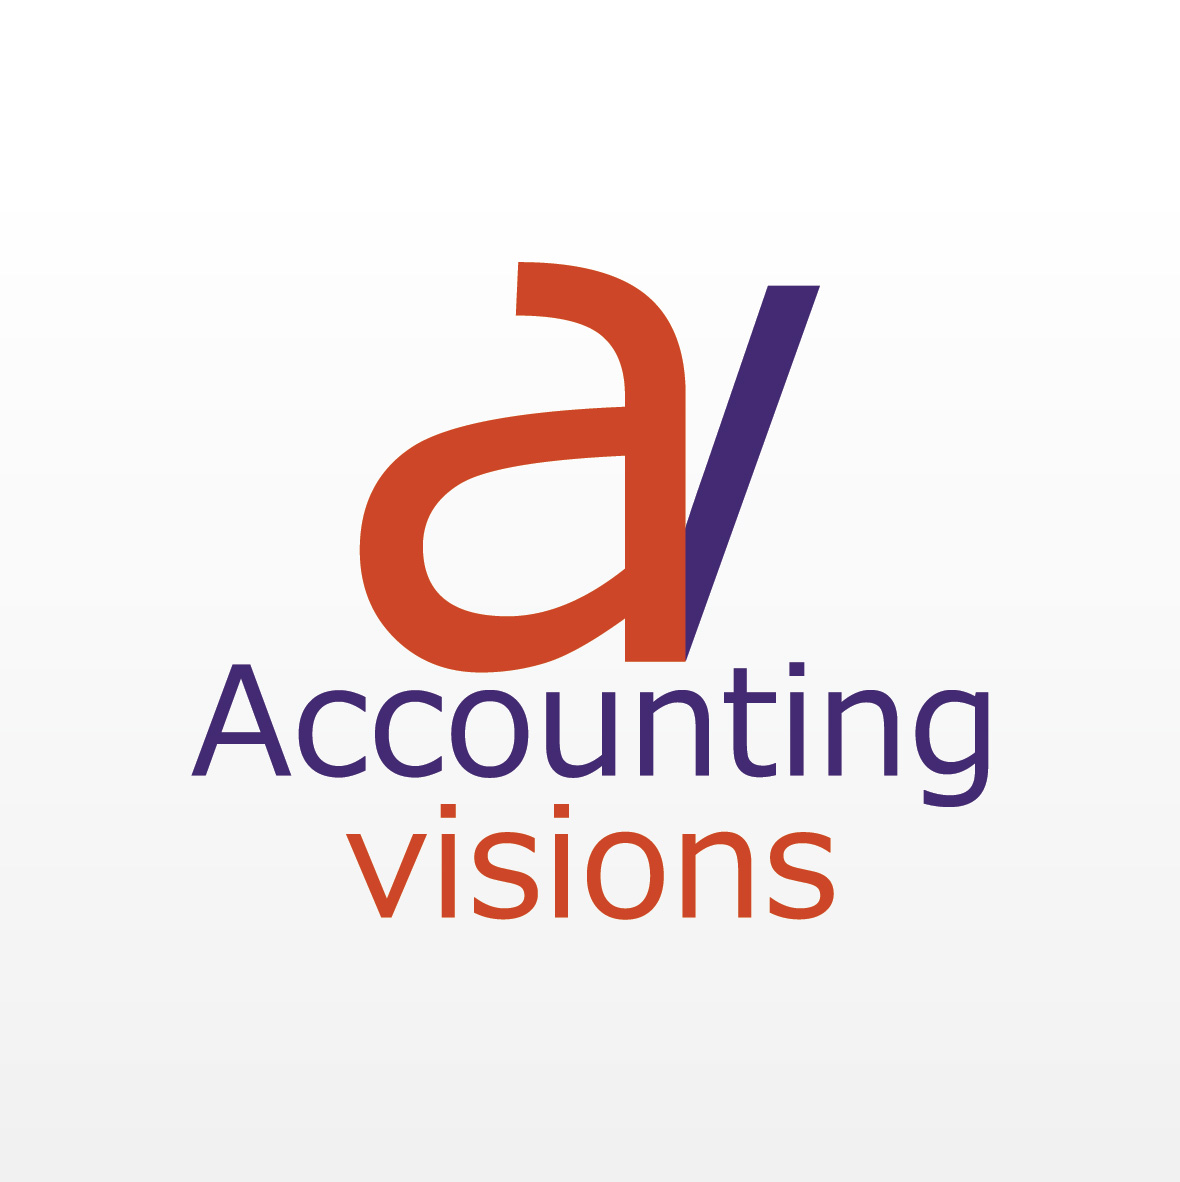 Logo Design by aesthetic-art - Entry No. 87 in the Logo Design Contest Accounting Visions.